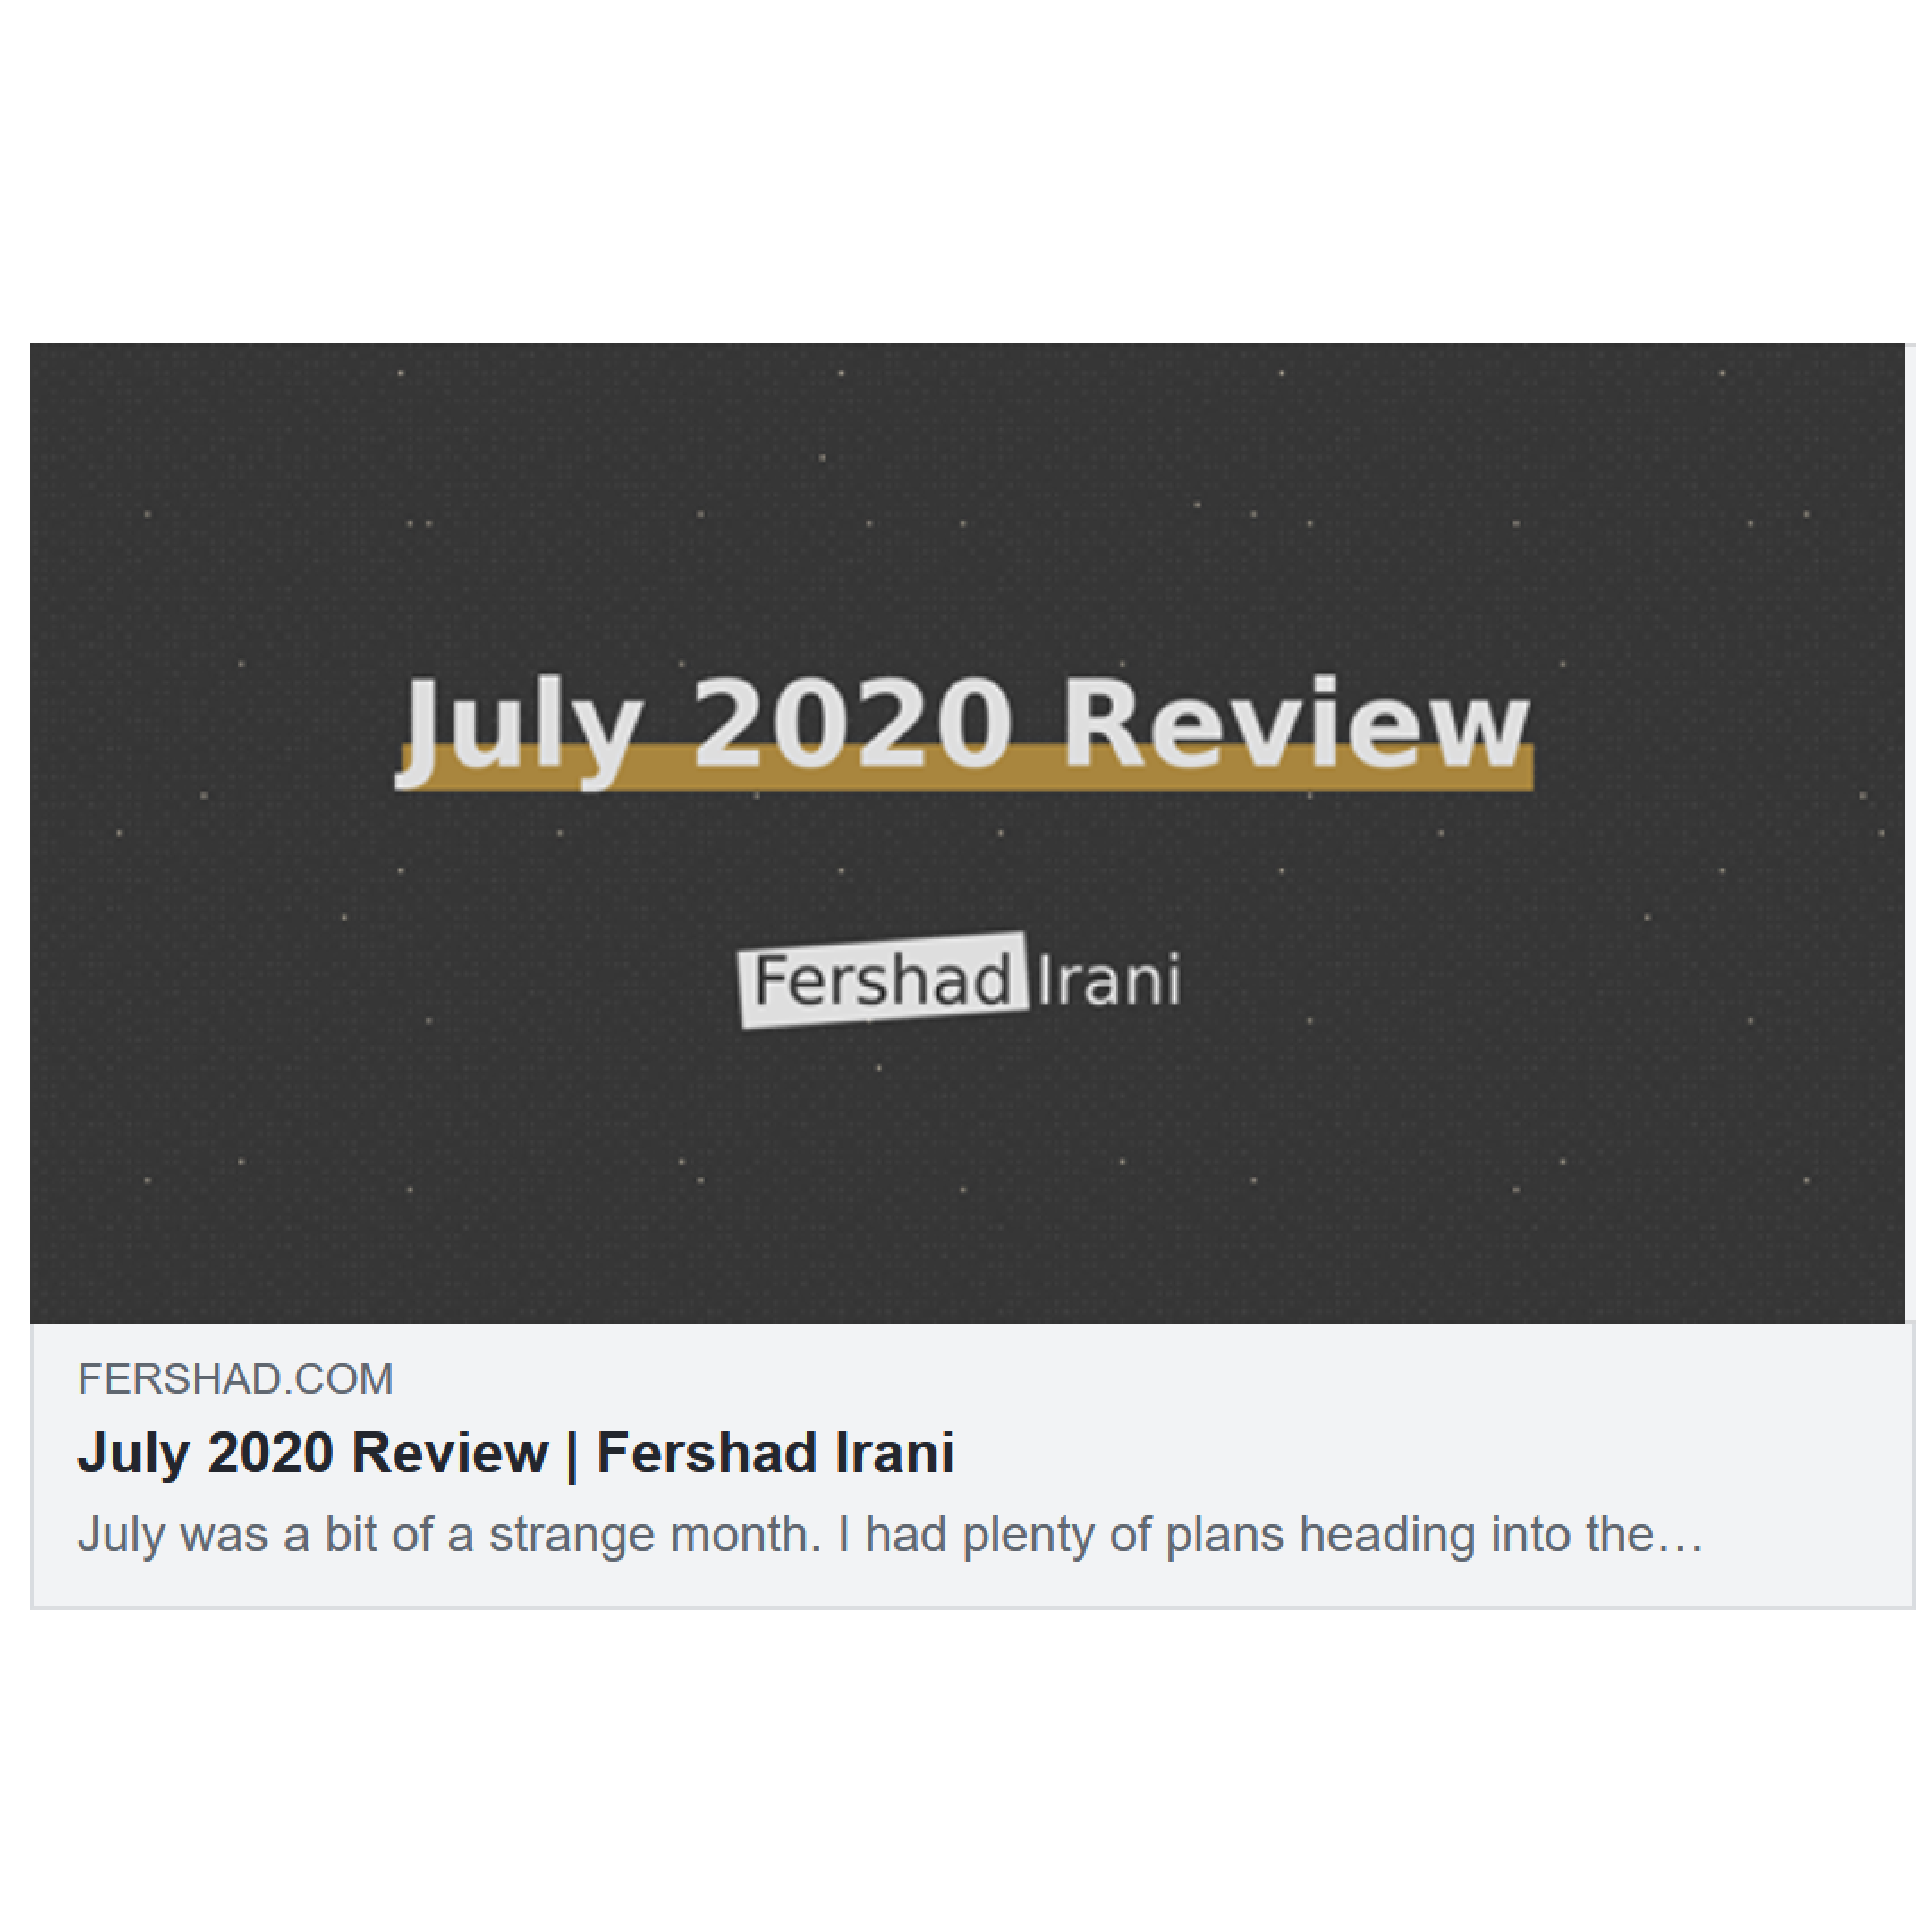 Screenshot of Facebook Sharing Debugger preview for July 2020 Review blog post with Open Graph tags.